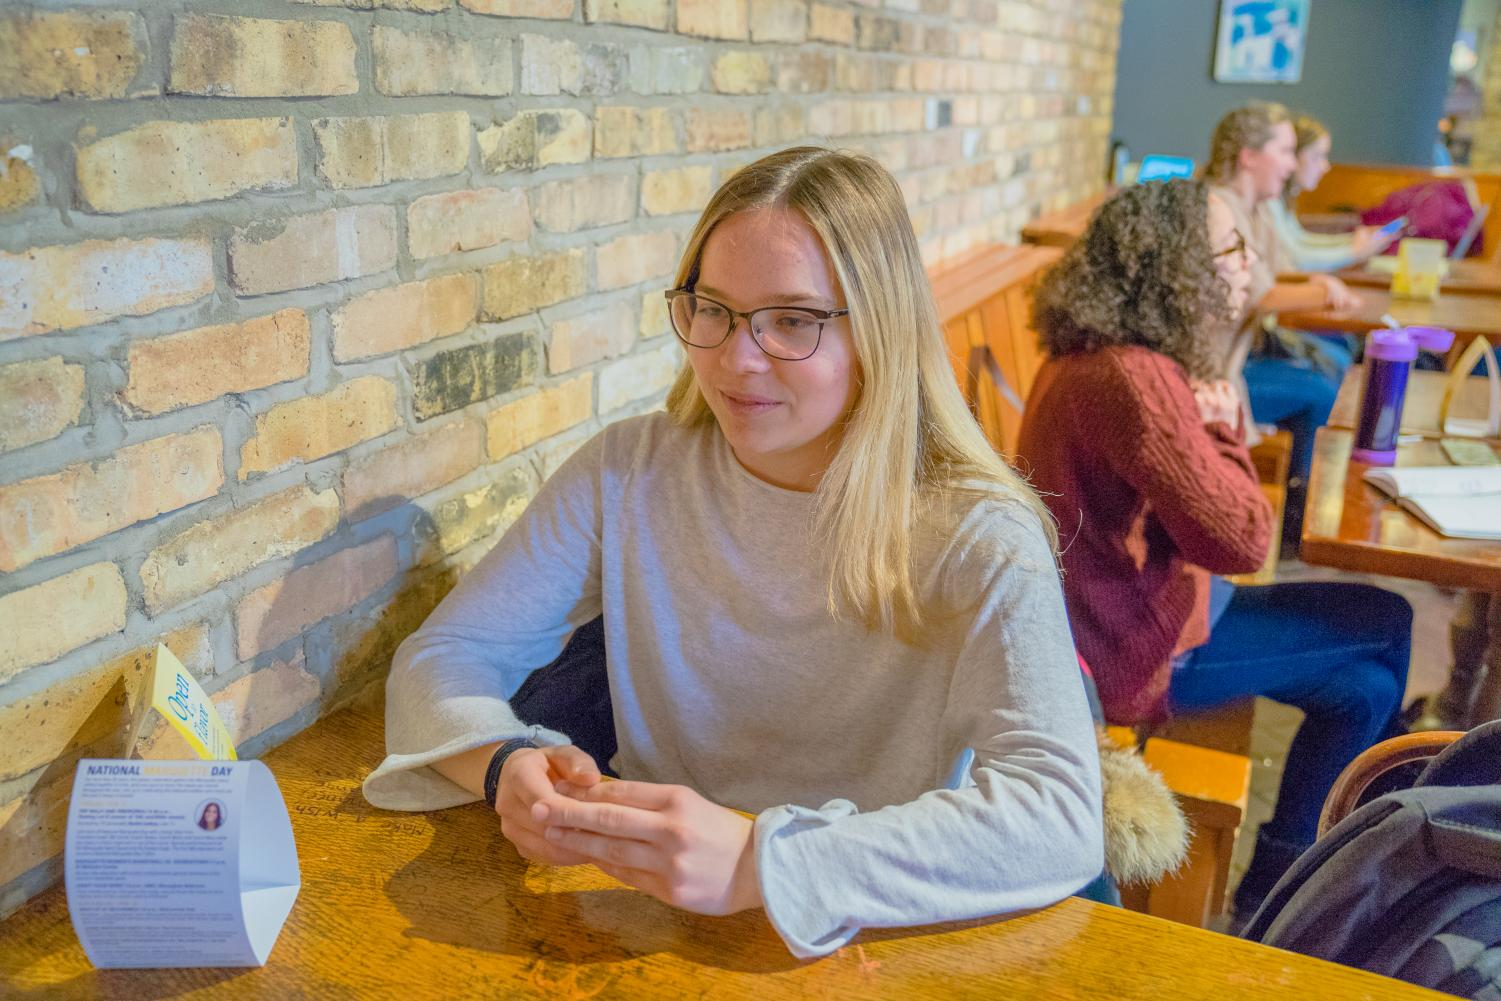 Kamila Turczewski, a freshman in the College of Engineering, talks about her experience as a female engineer.